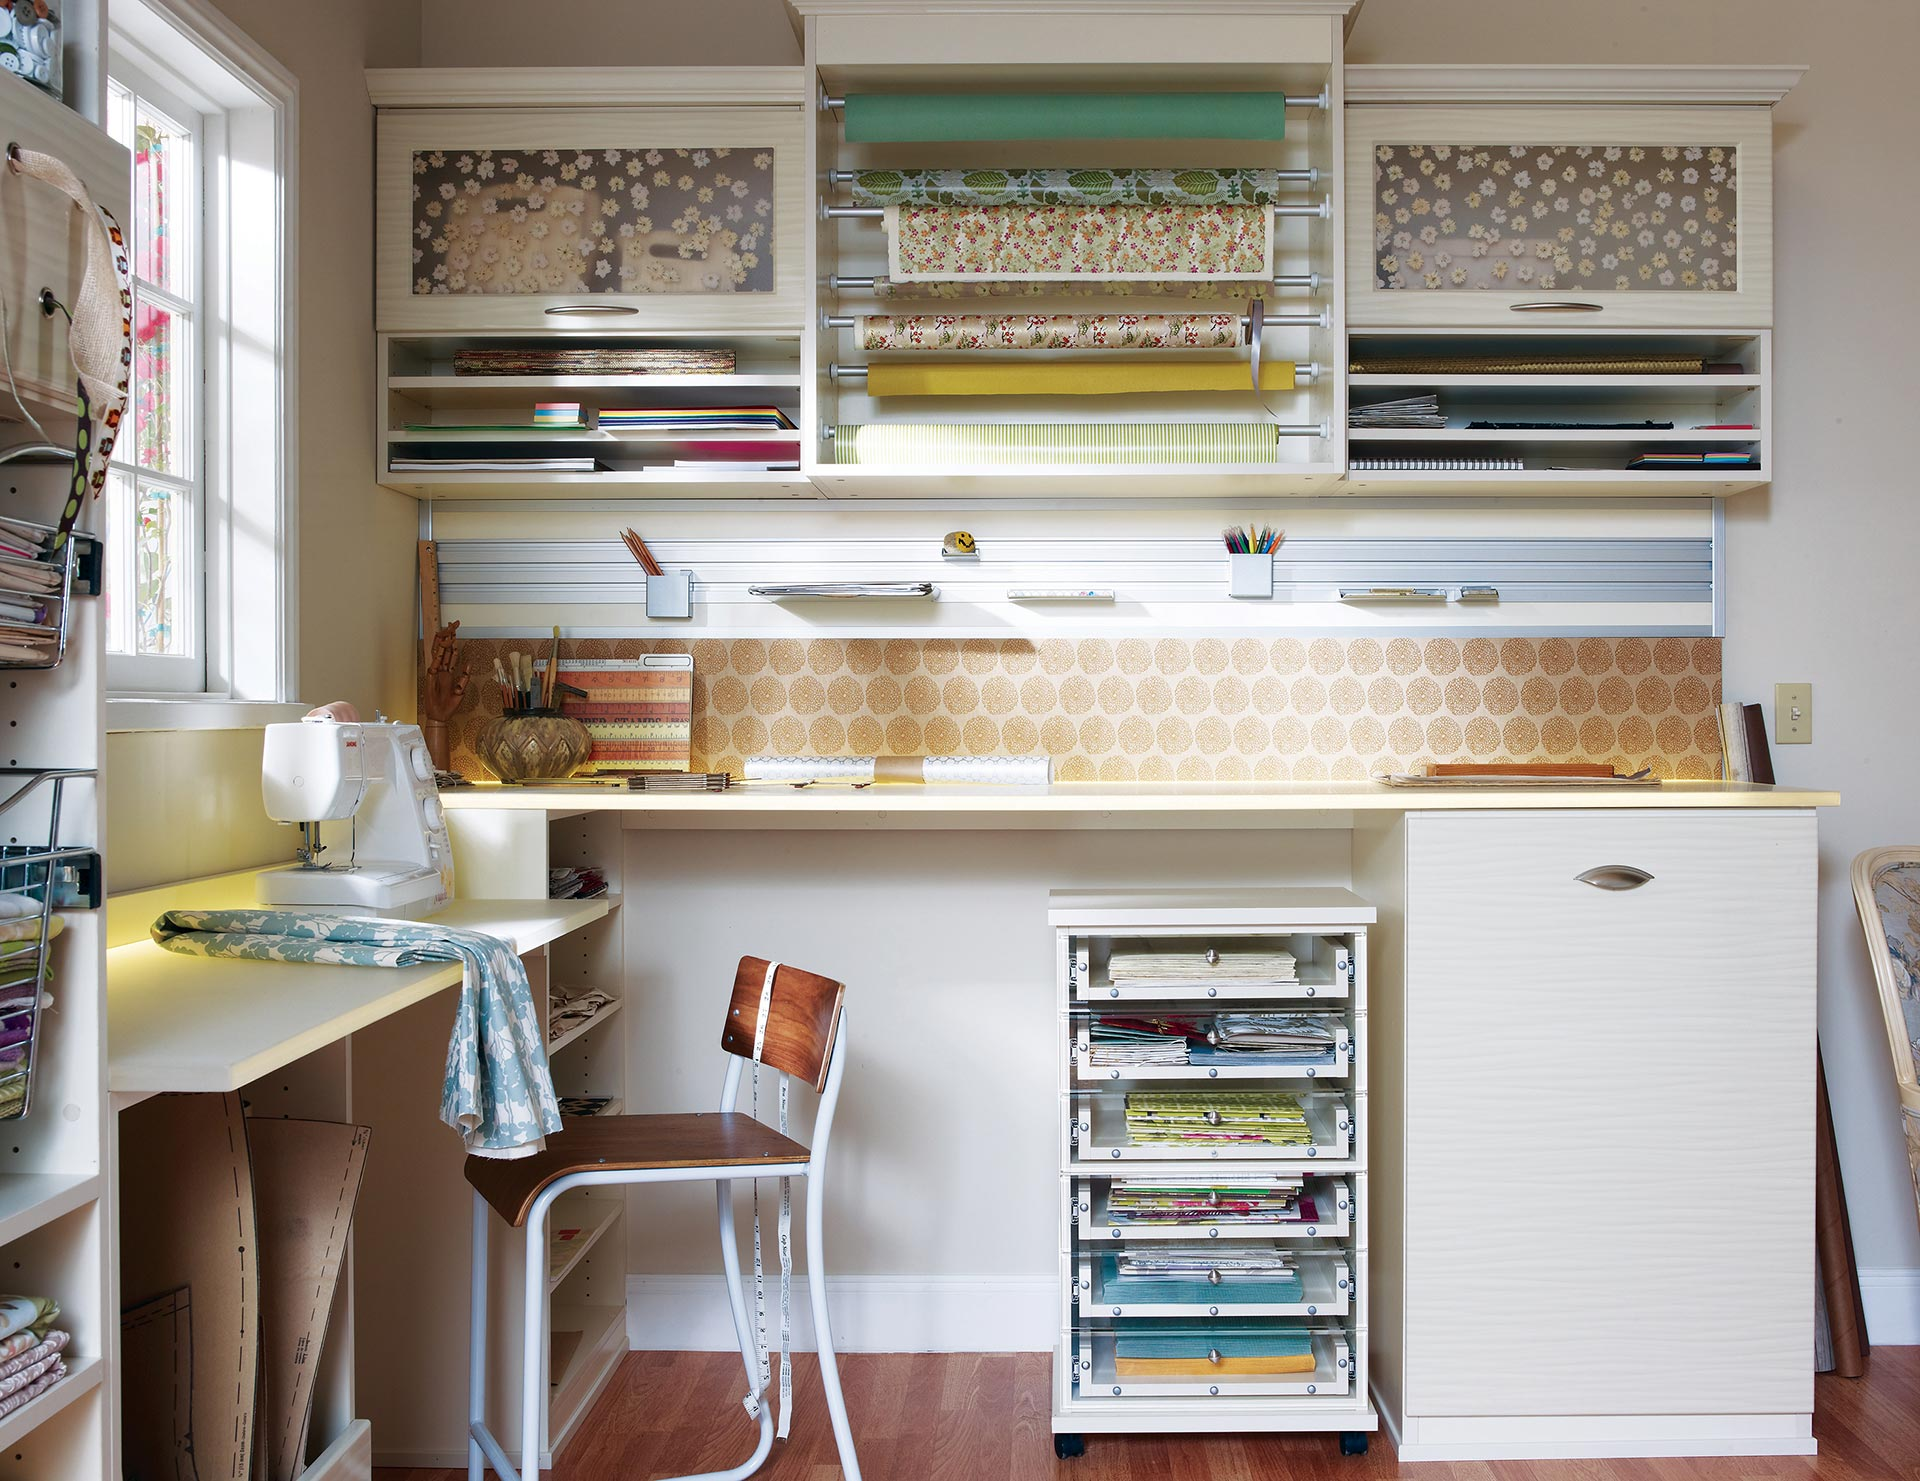 Storage For Craft Room: Craft Room Storage Ideas & Organization Systems